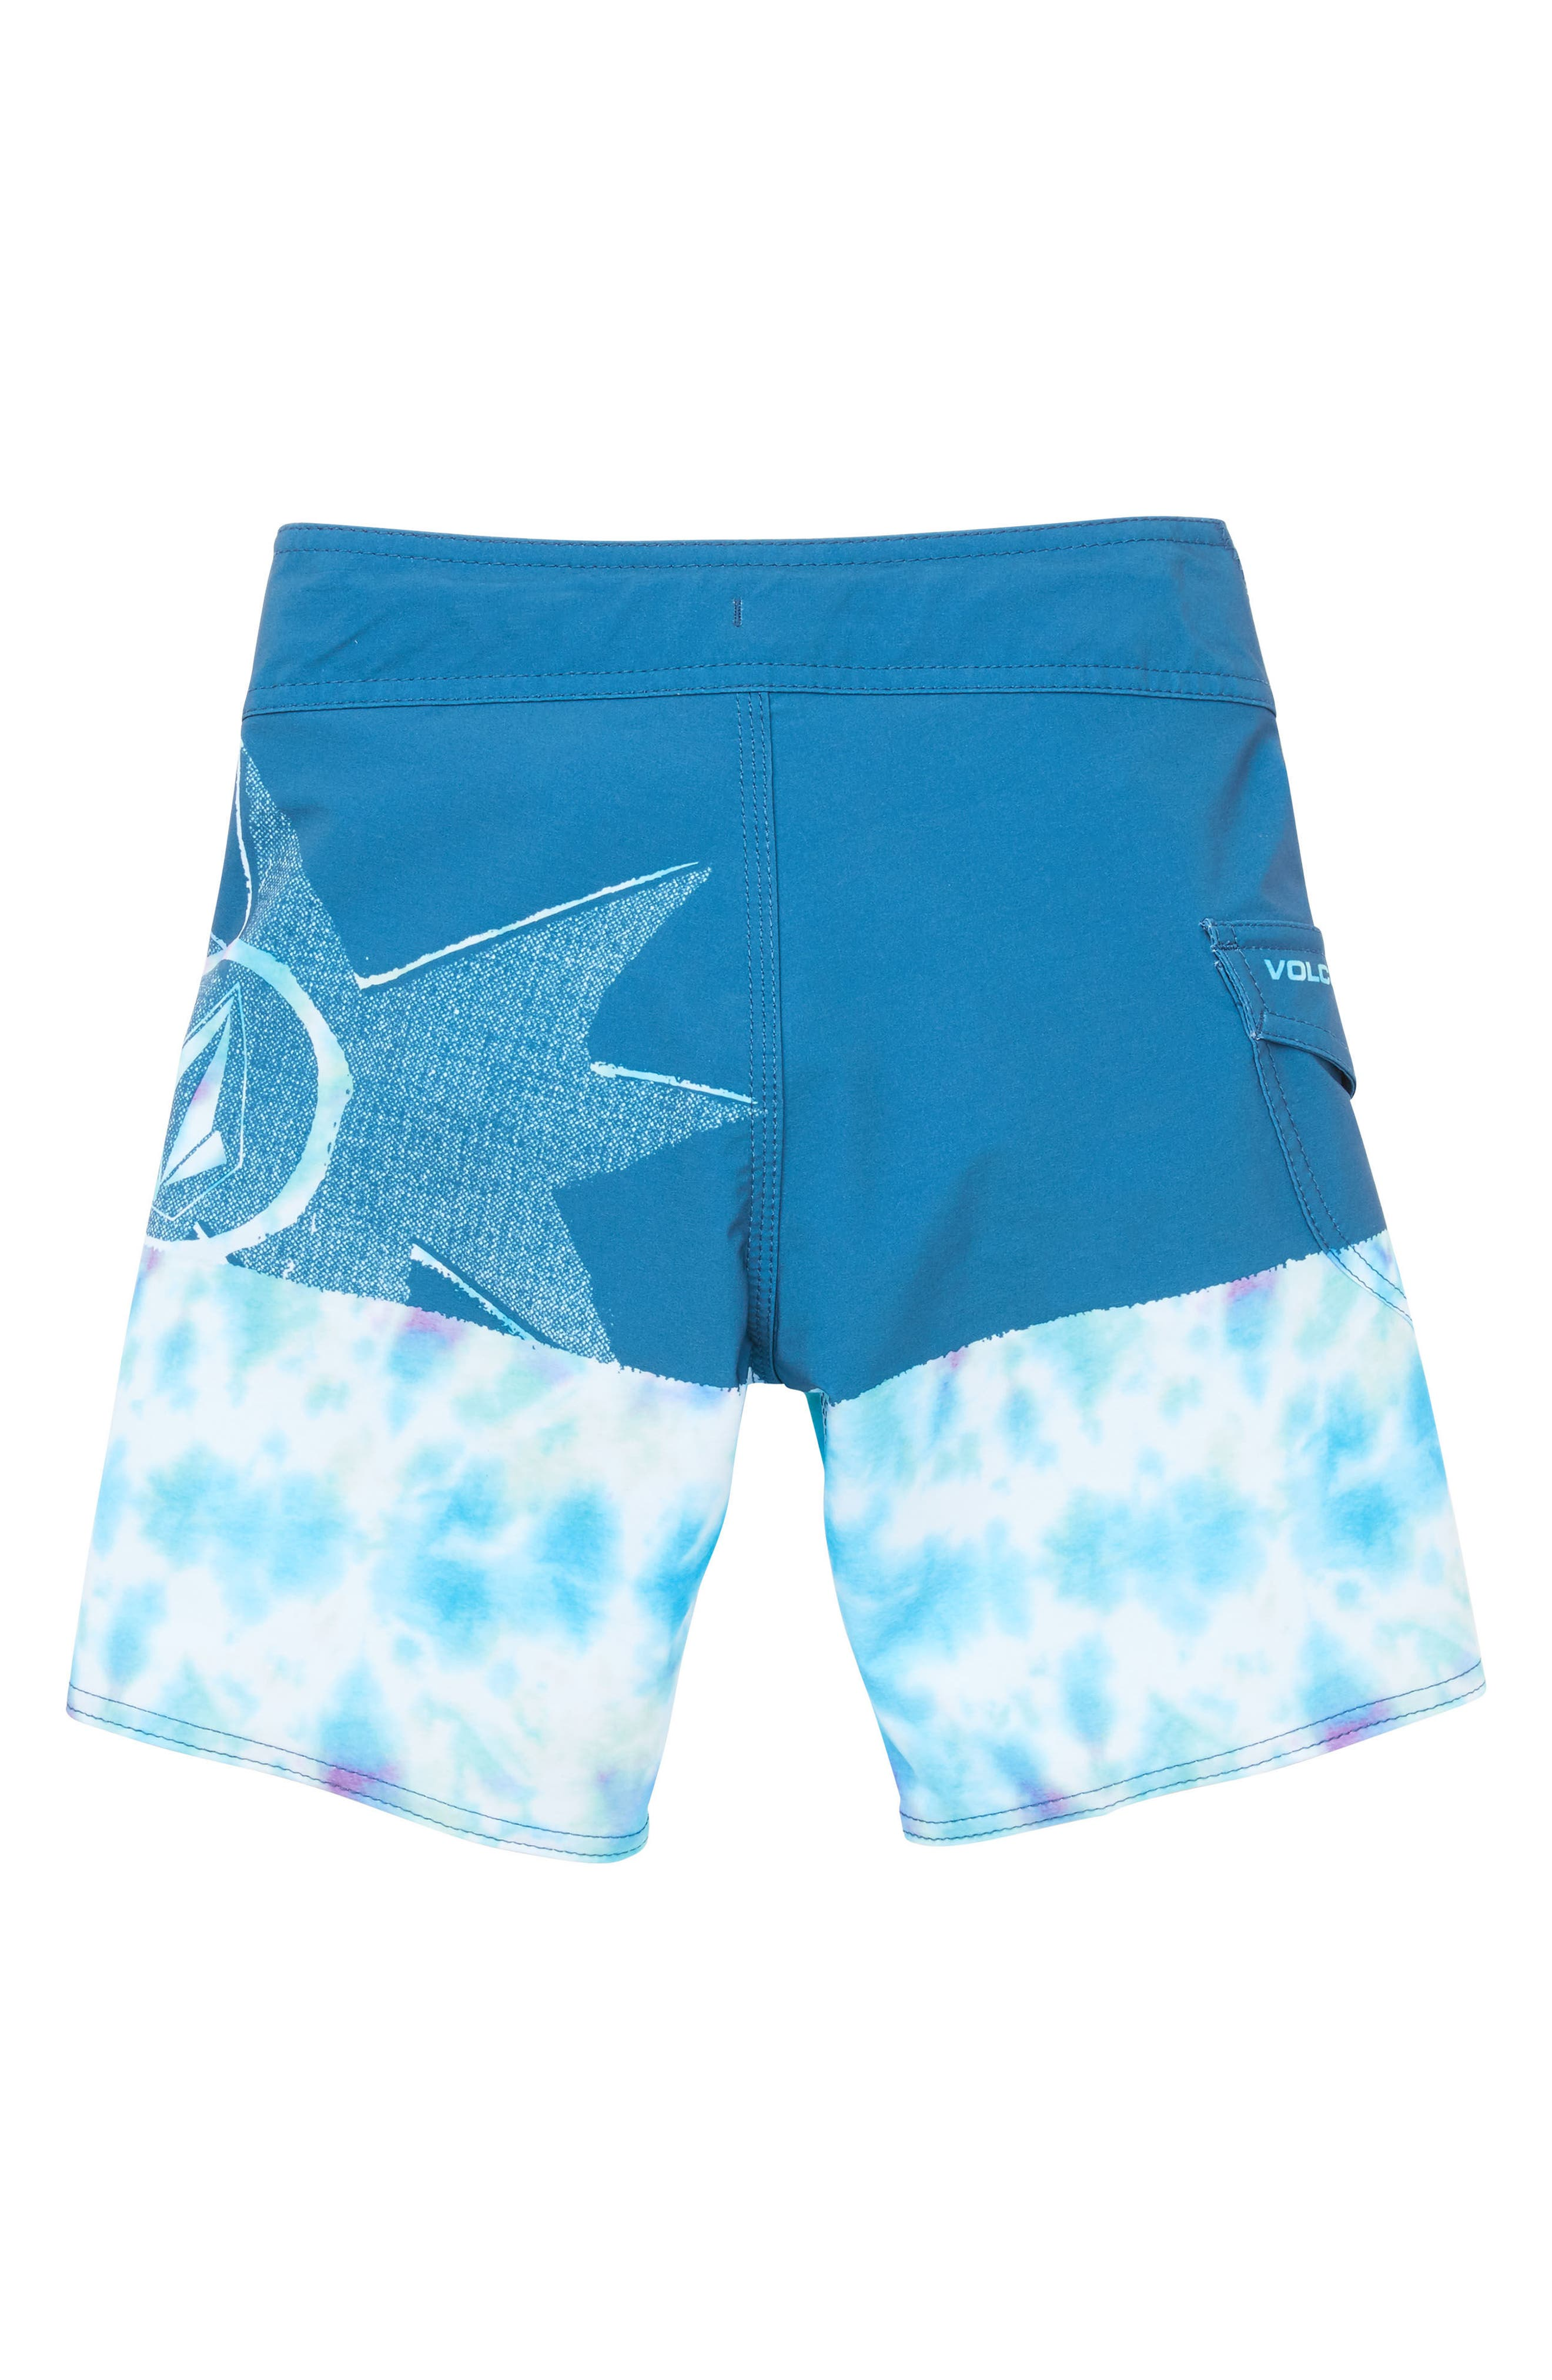 Lido Block Mod Board Shorts,                             Alternate thumbnail 2, color,                             440